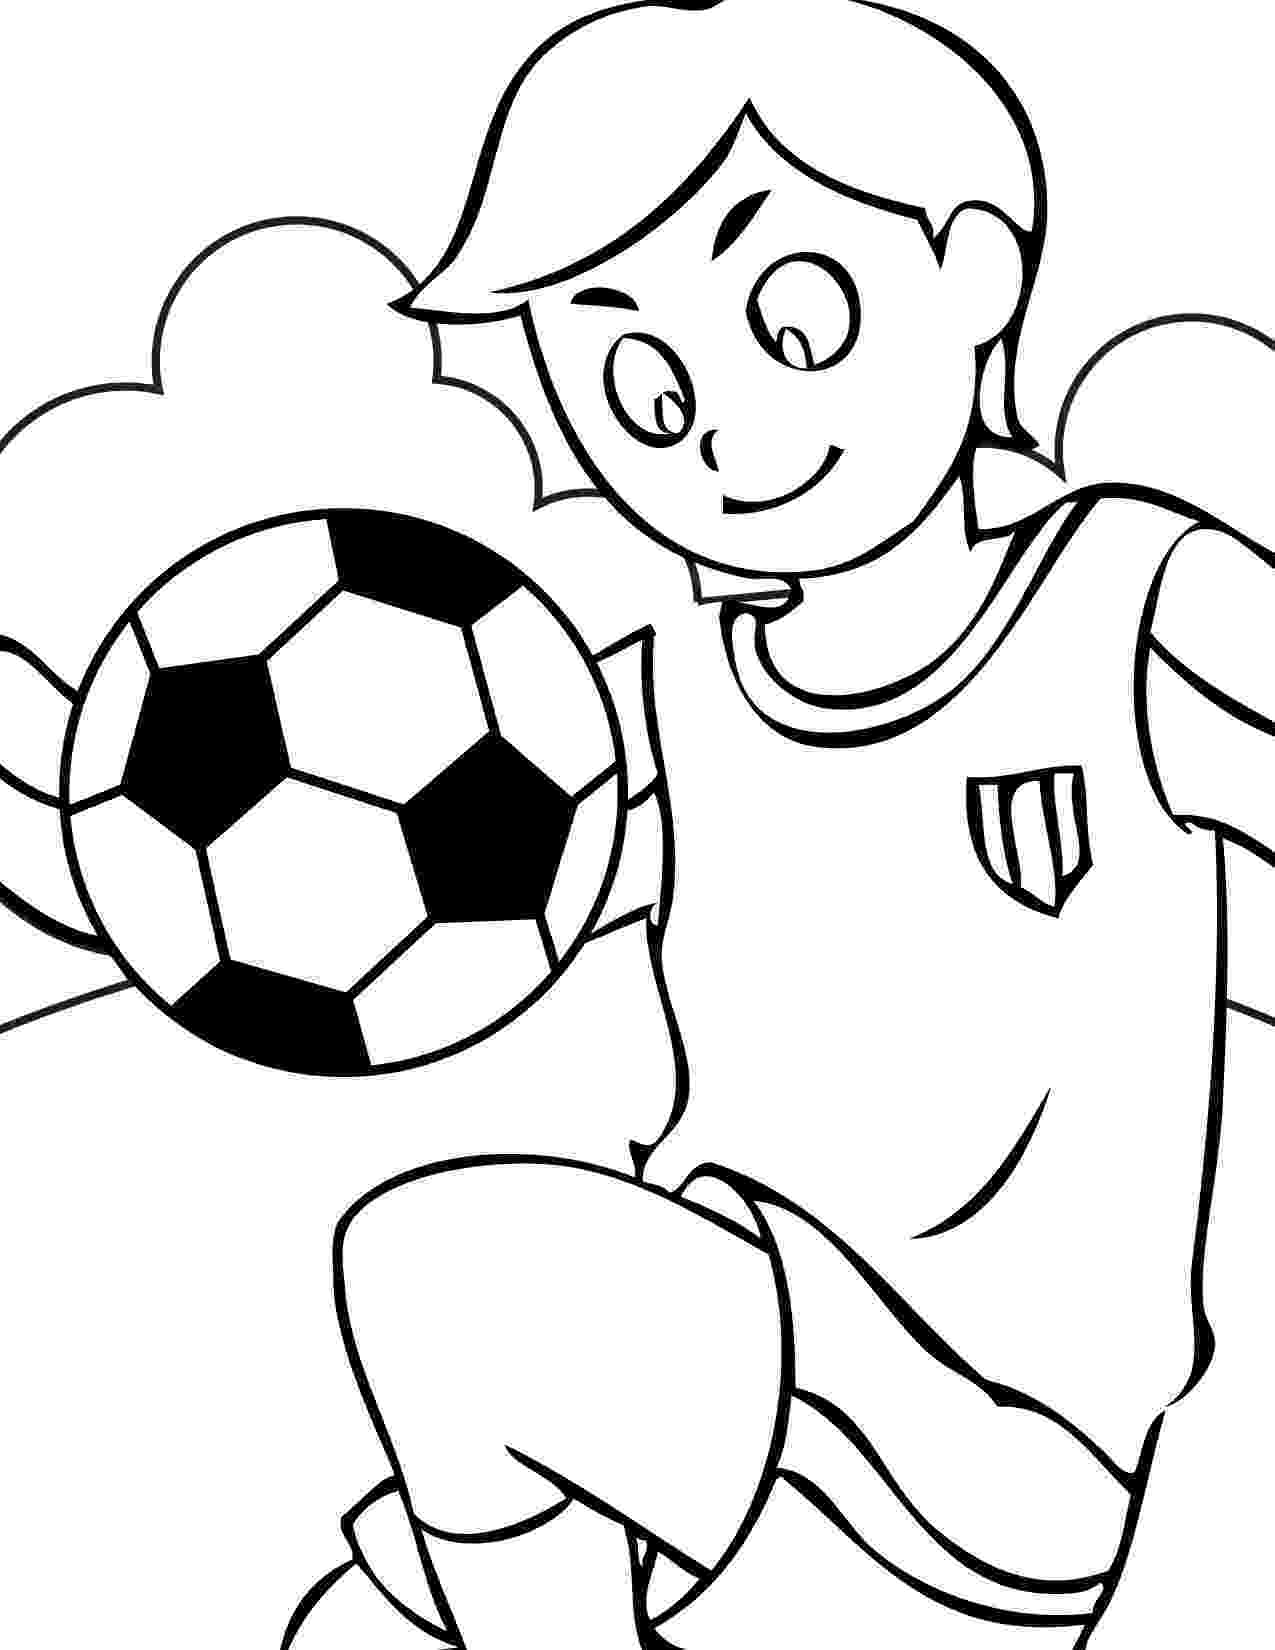 soccer coloring pages for kids soccer free to color for kids soccer kids coloring pages soccer for pages kids coloring